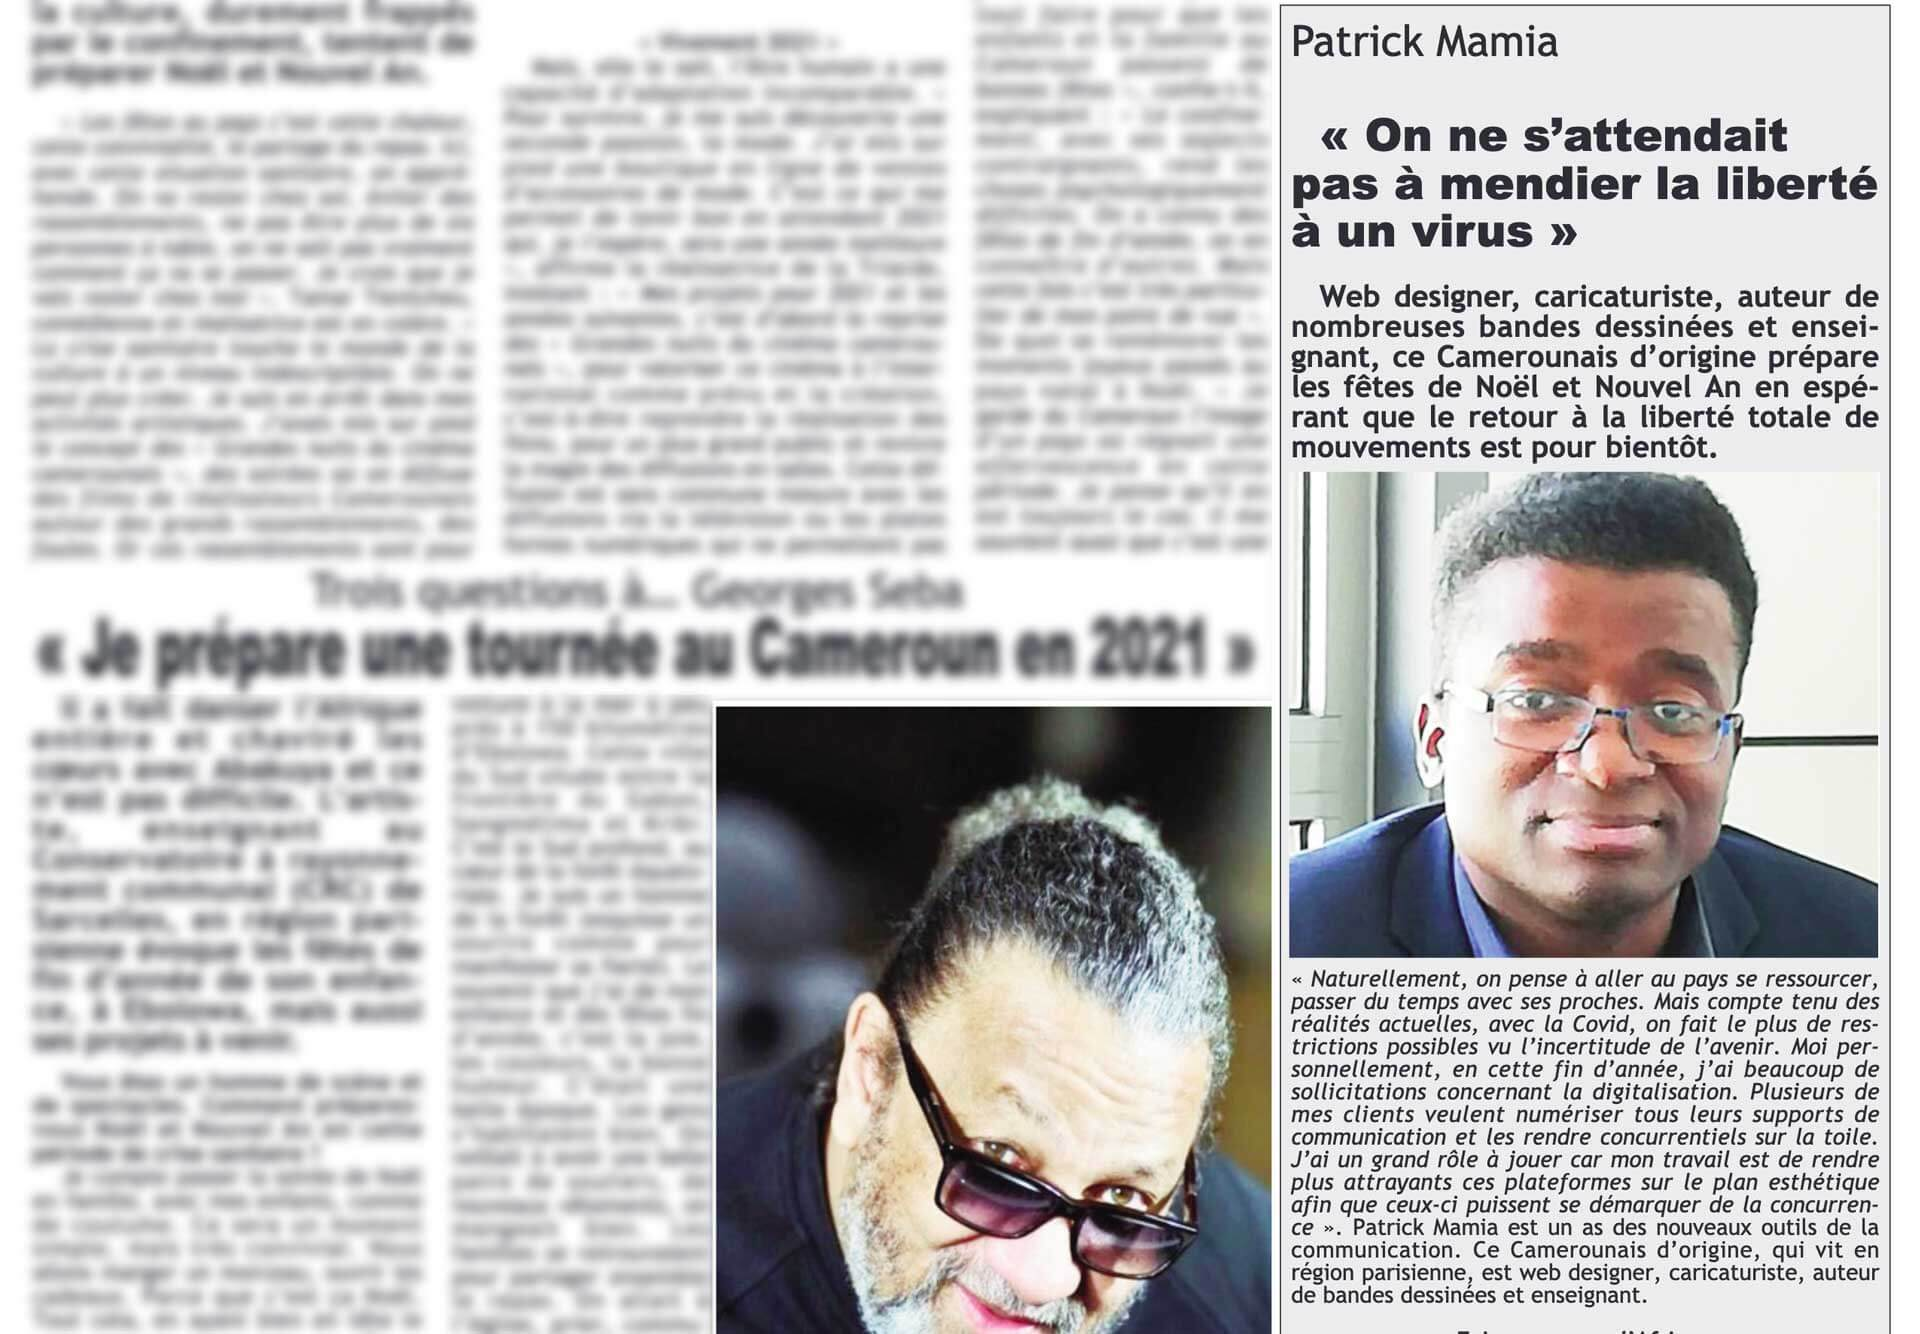 Photo Mamia dans le Journal Messager Cameroun